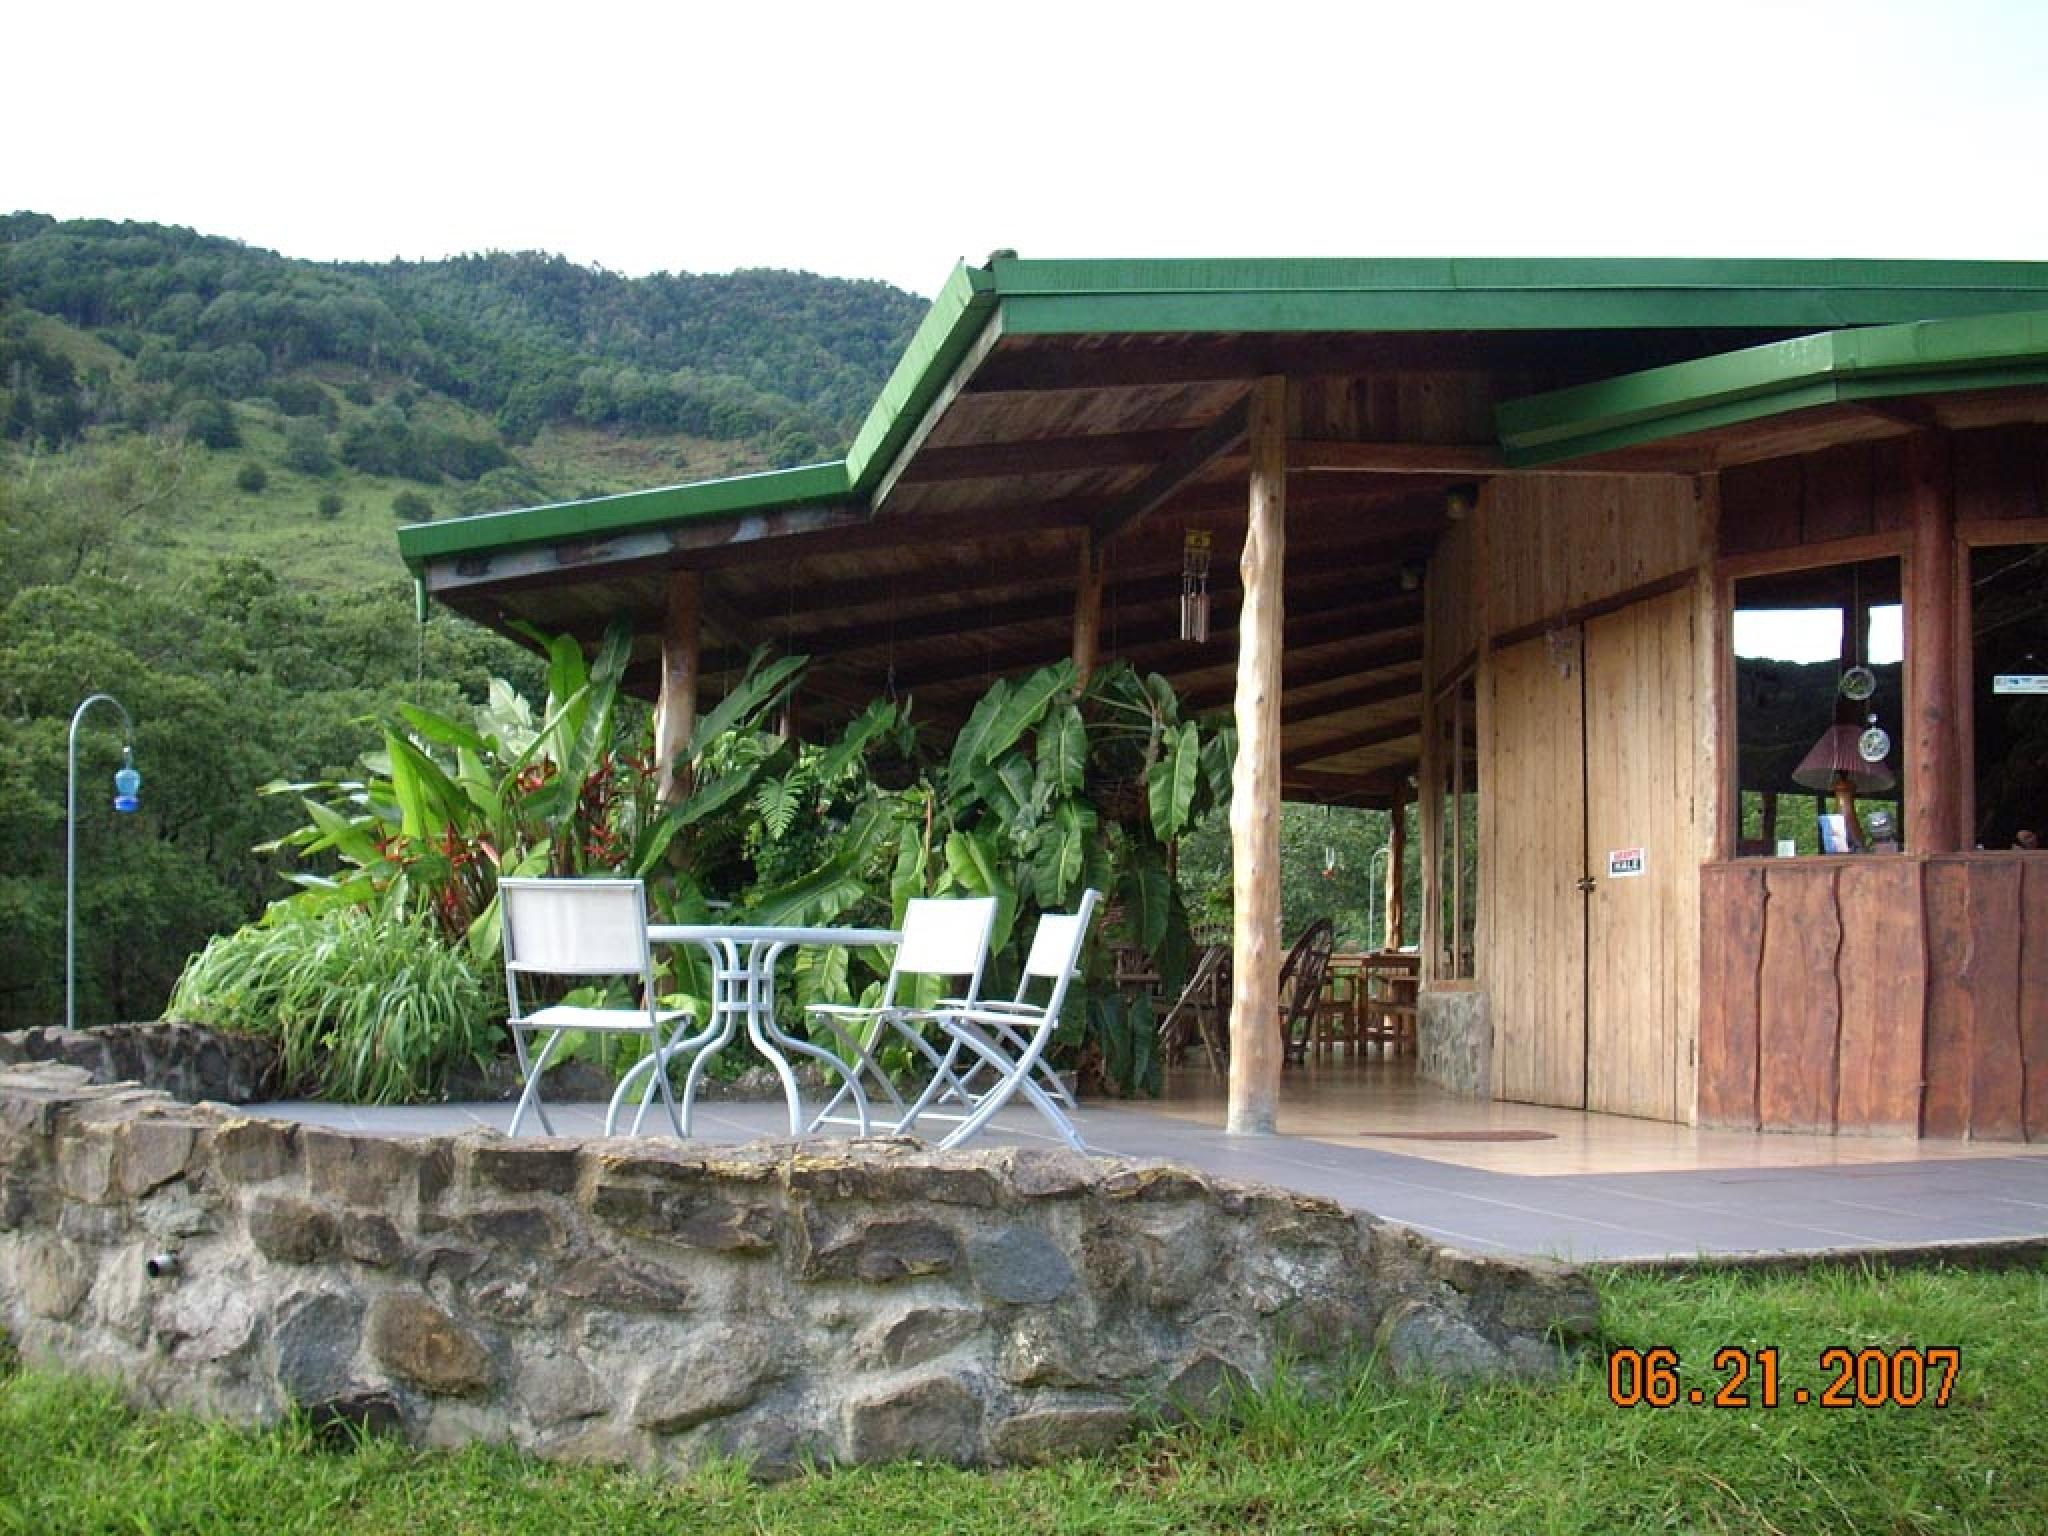 El Toucanet Lodge